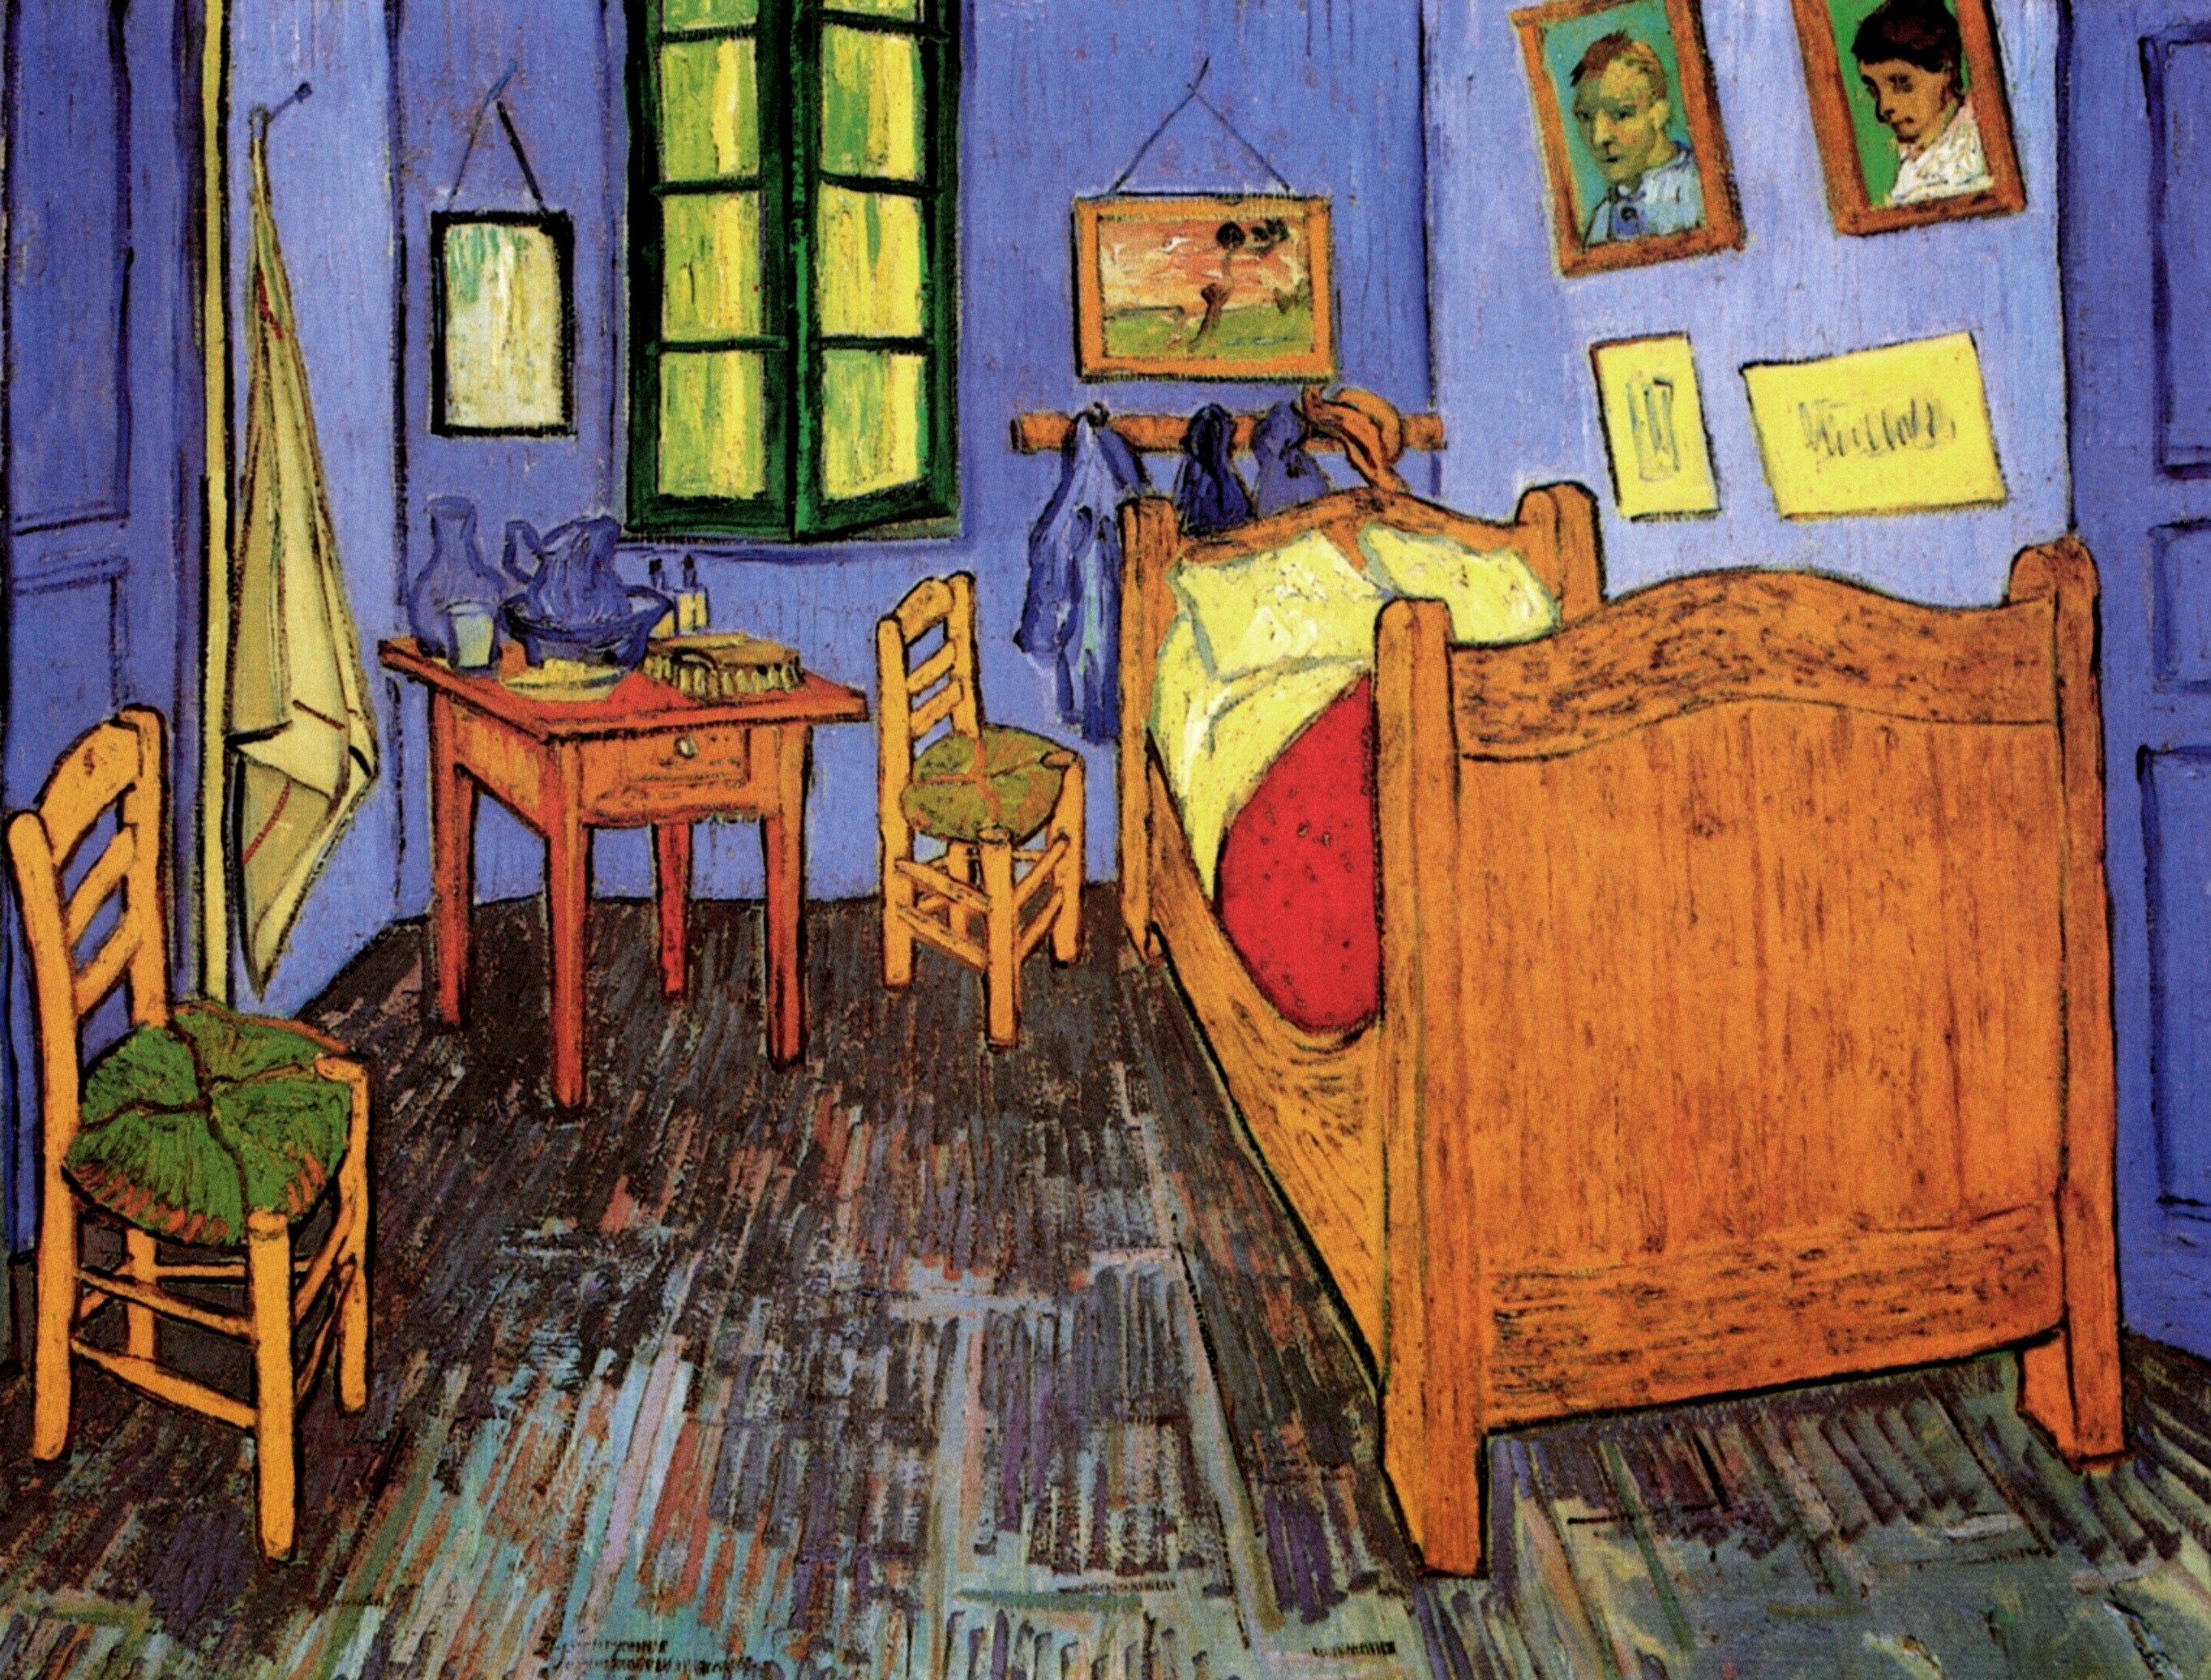 Van Gogh Bedroom In Arles on wheat fields, starry night over the rhone, bedroom van gogh painting oil, bedroom in arles high resolution, sunday afternoon on the island of la grande jatte, bedroom at arles by van gogh, wheat field with crows, the church at auvers, olive trees, yellow house, vincent van gogh, bedroom in arles 1889, water lilies, portrait of dr. gachet, sesame street bedroom van gogh, cafe terrace at night, church at arles van gogh, van gogh museum, the bedroom van gogh, self-portraits by vincent van gogh, the starry night, room at arles van gogh, the potato eaters, bedroom vincent van gogh ppt, room in arles van gogh,